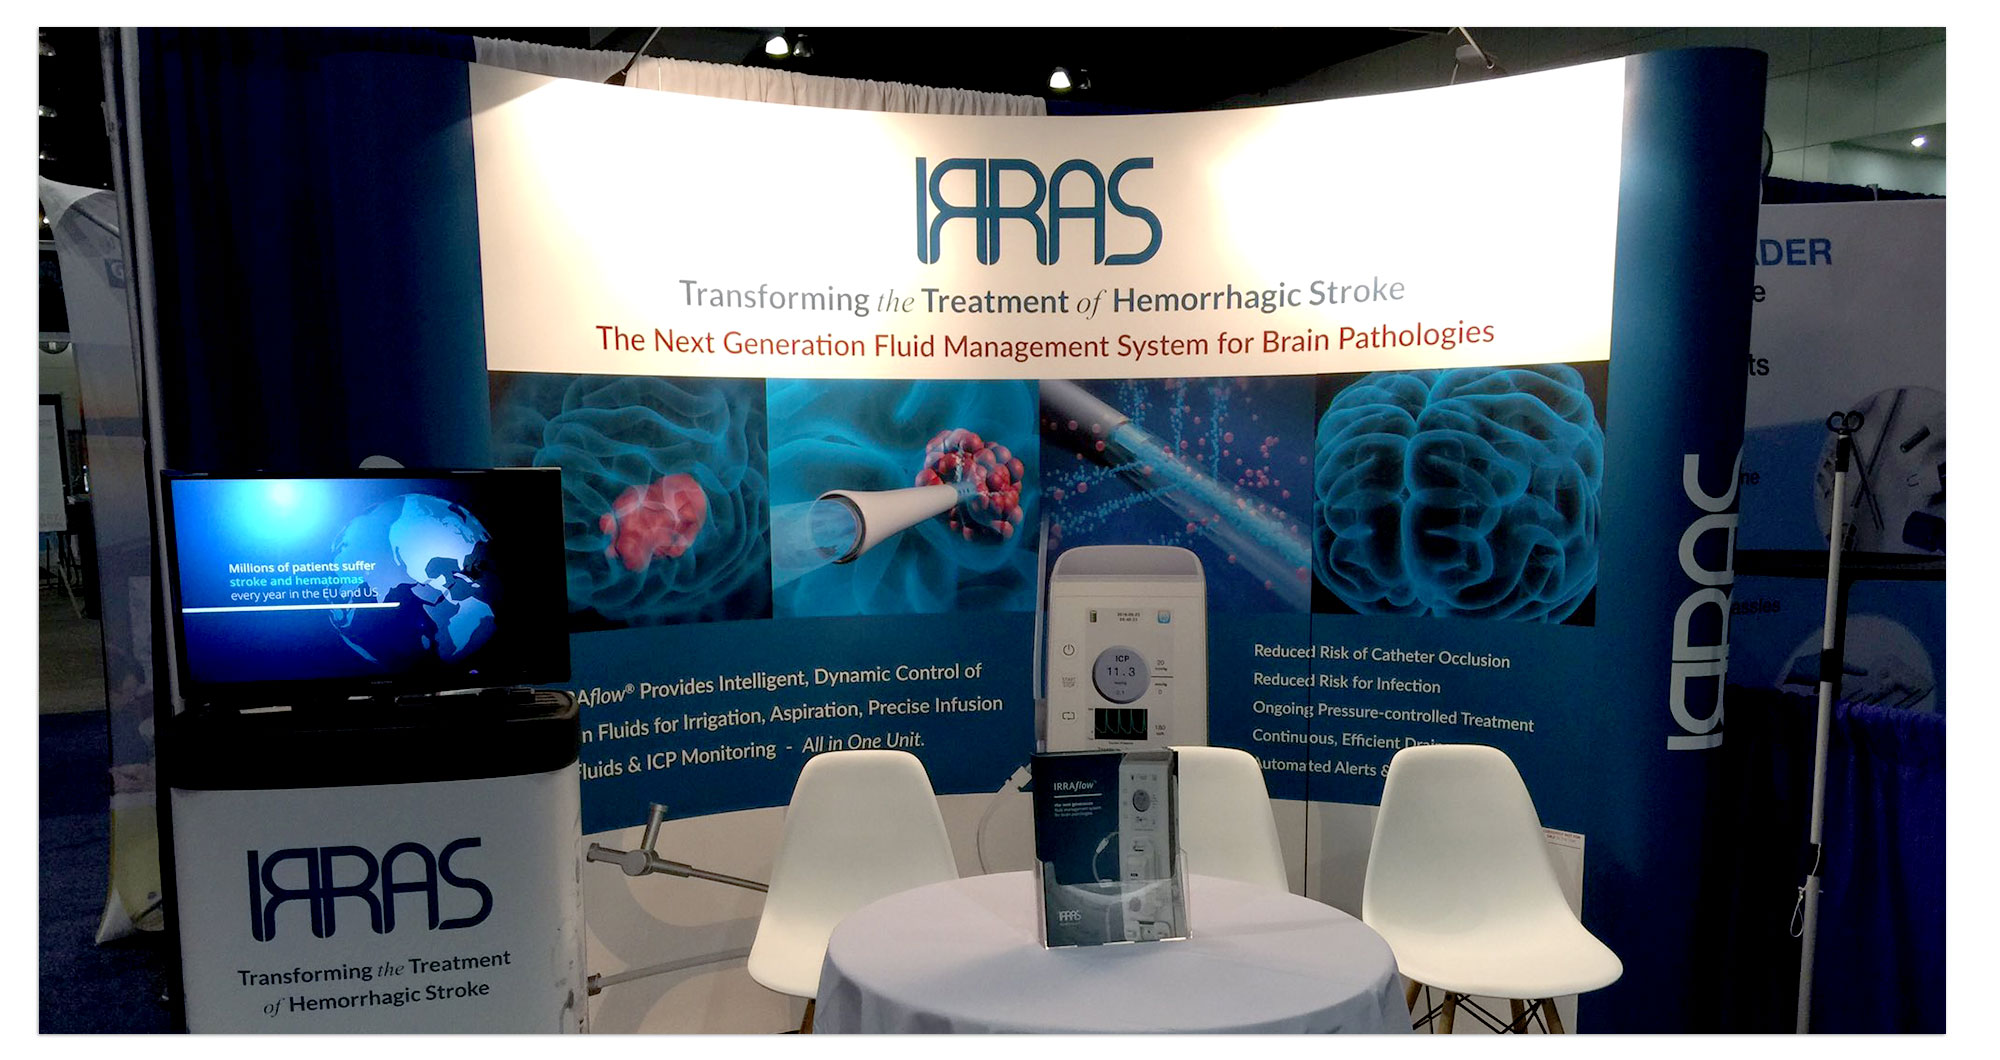 Irras Booth Exhibit